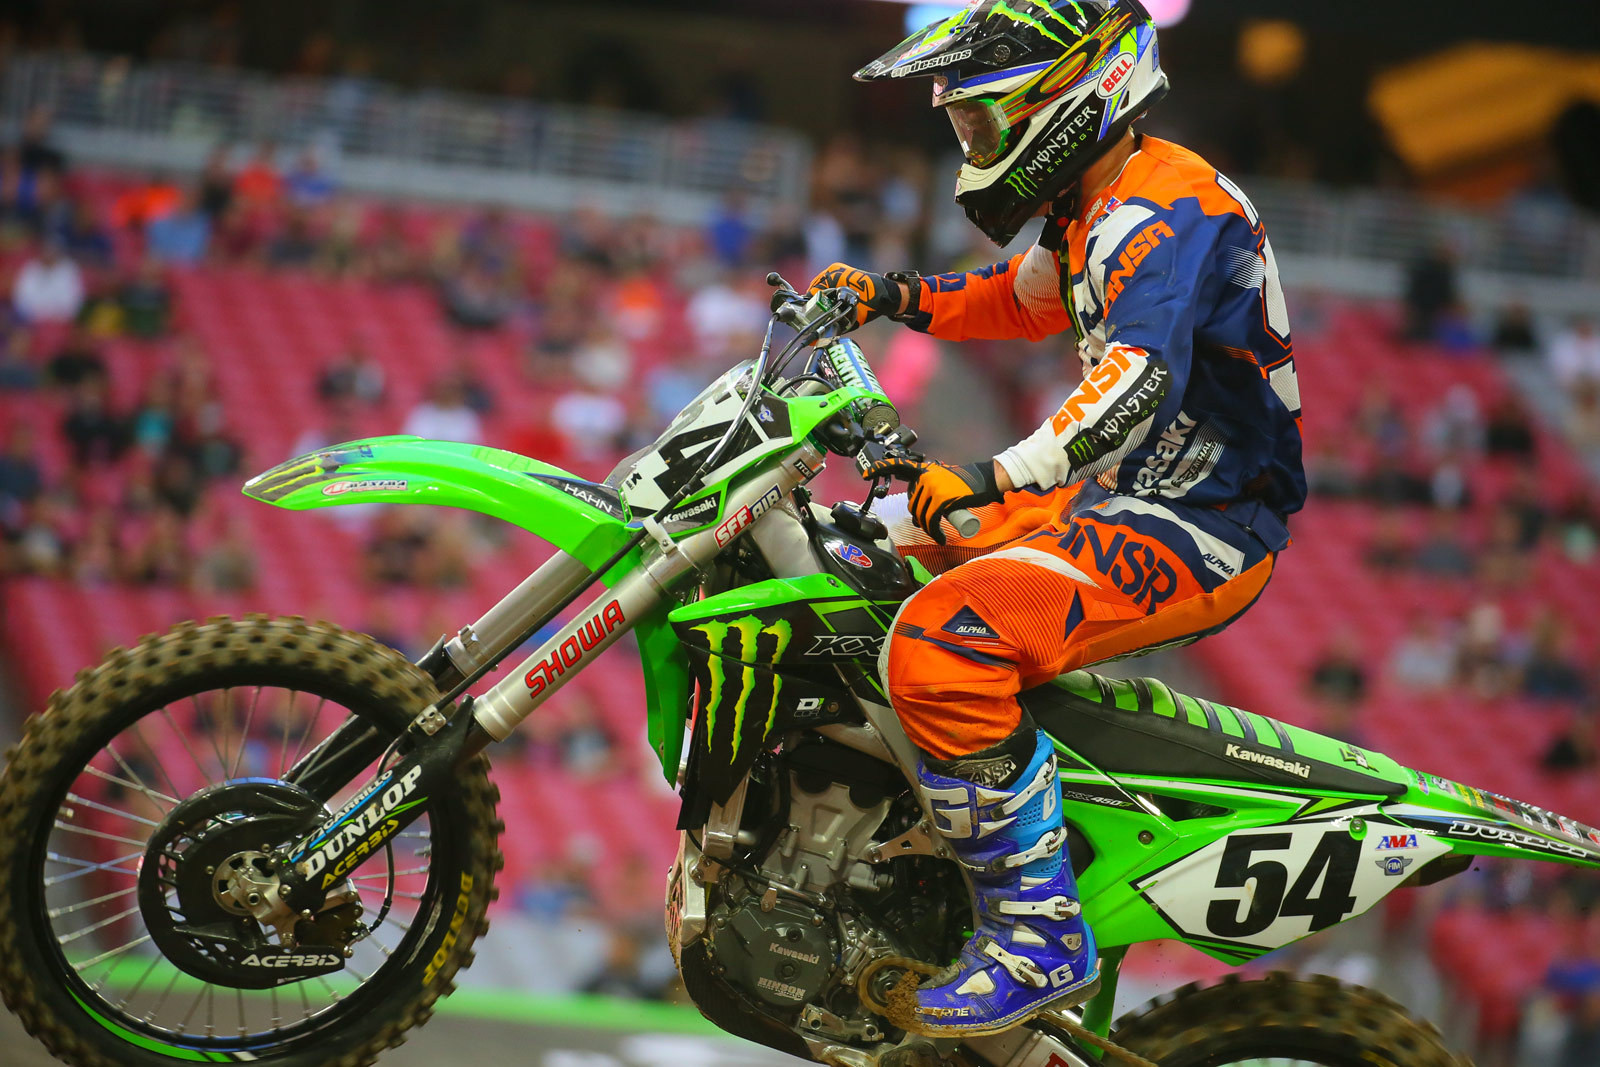 2016 Glendale Supercross